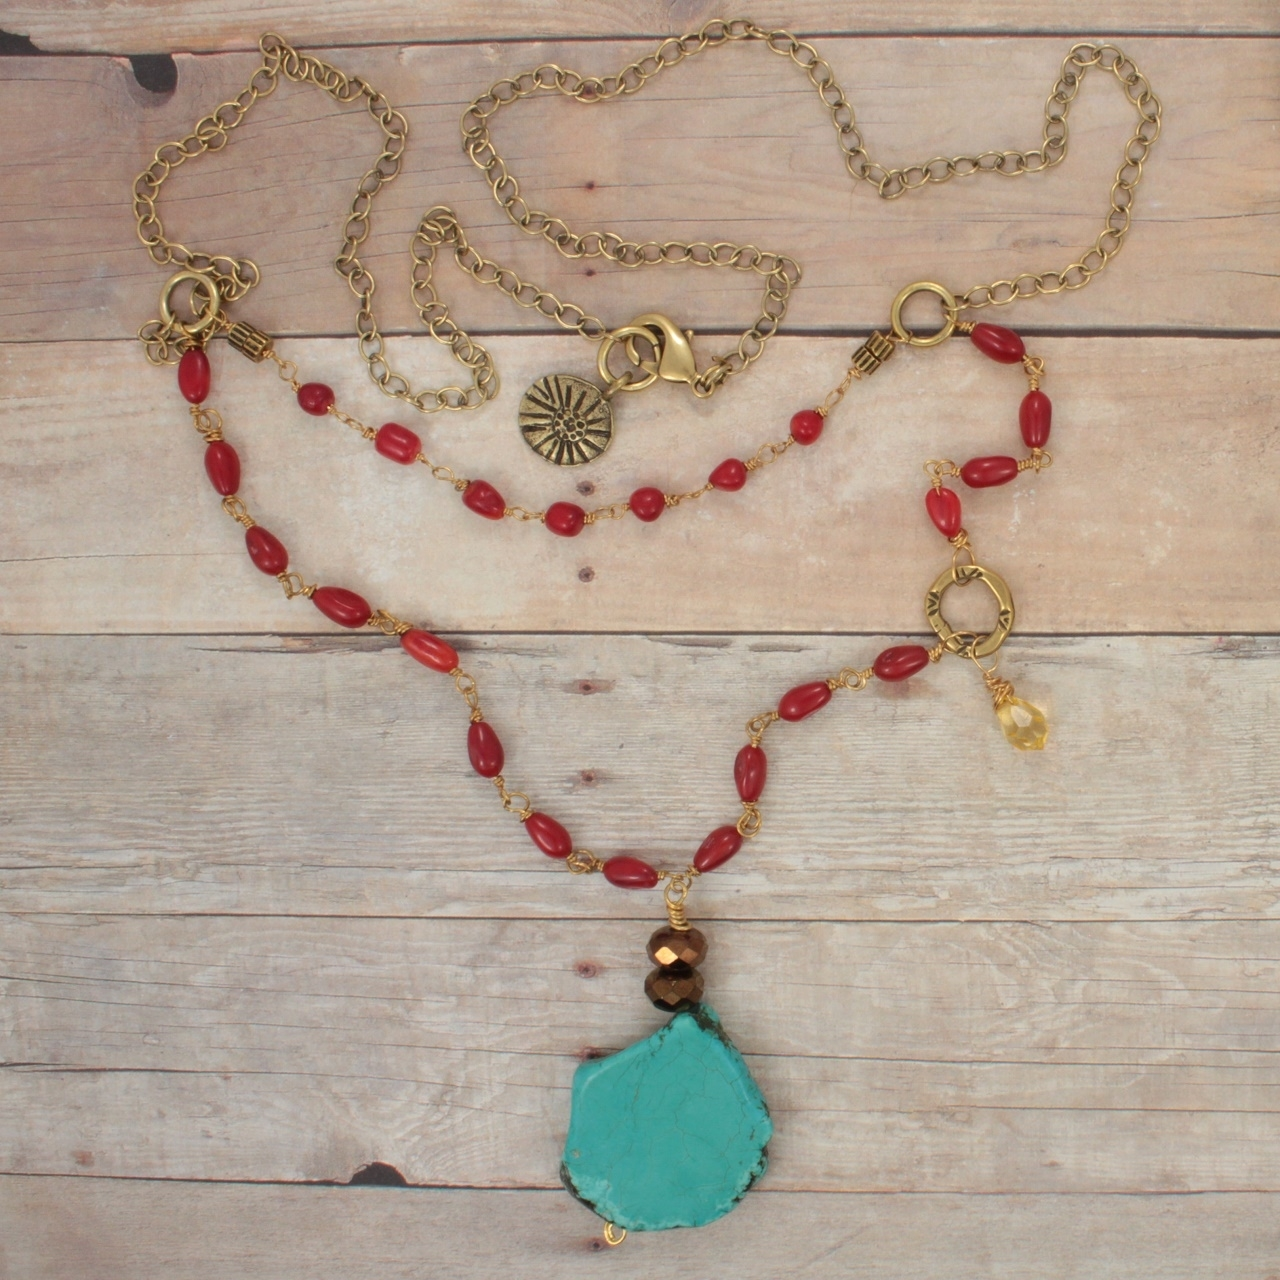 Turquoise Island Get-Away Necklace